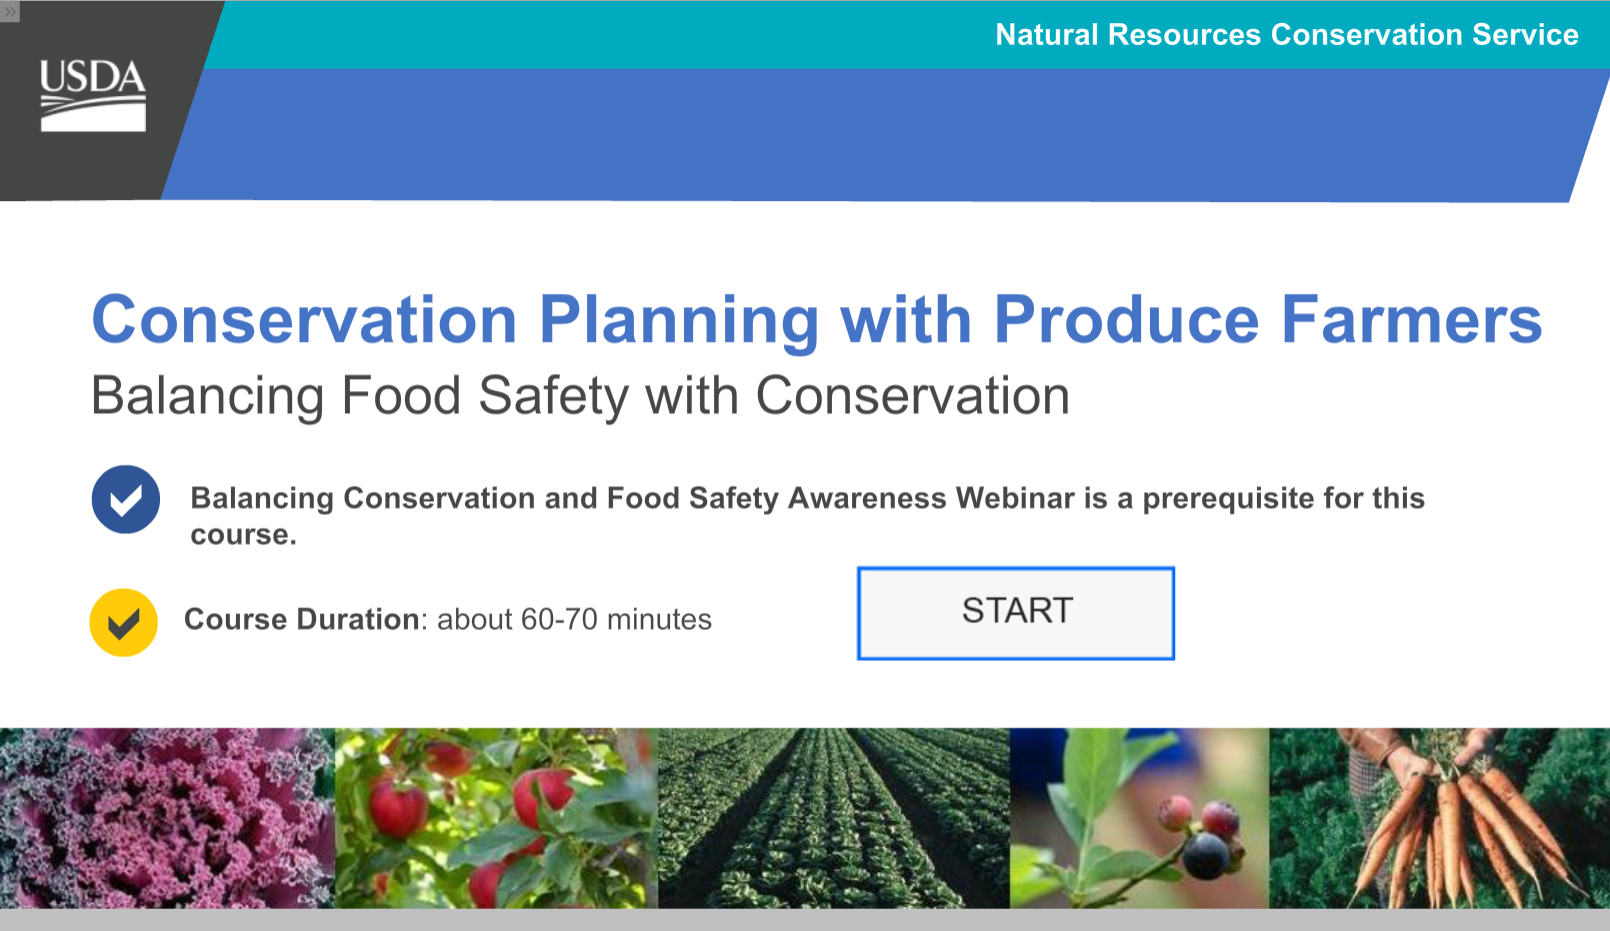 Conservation Planning with Produce Farmers